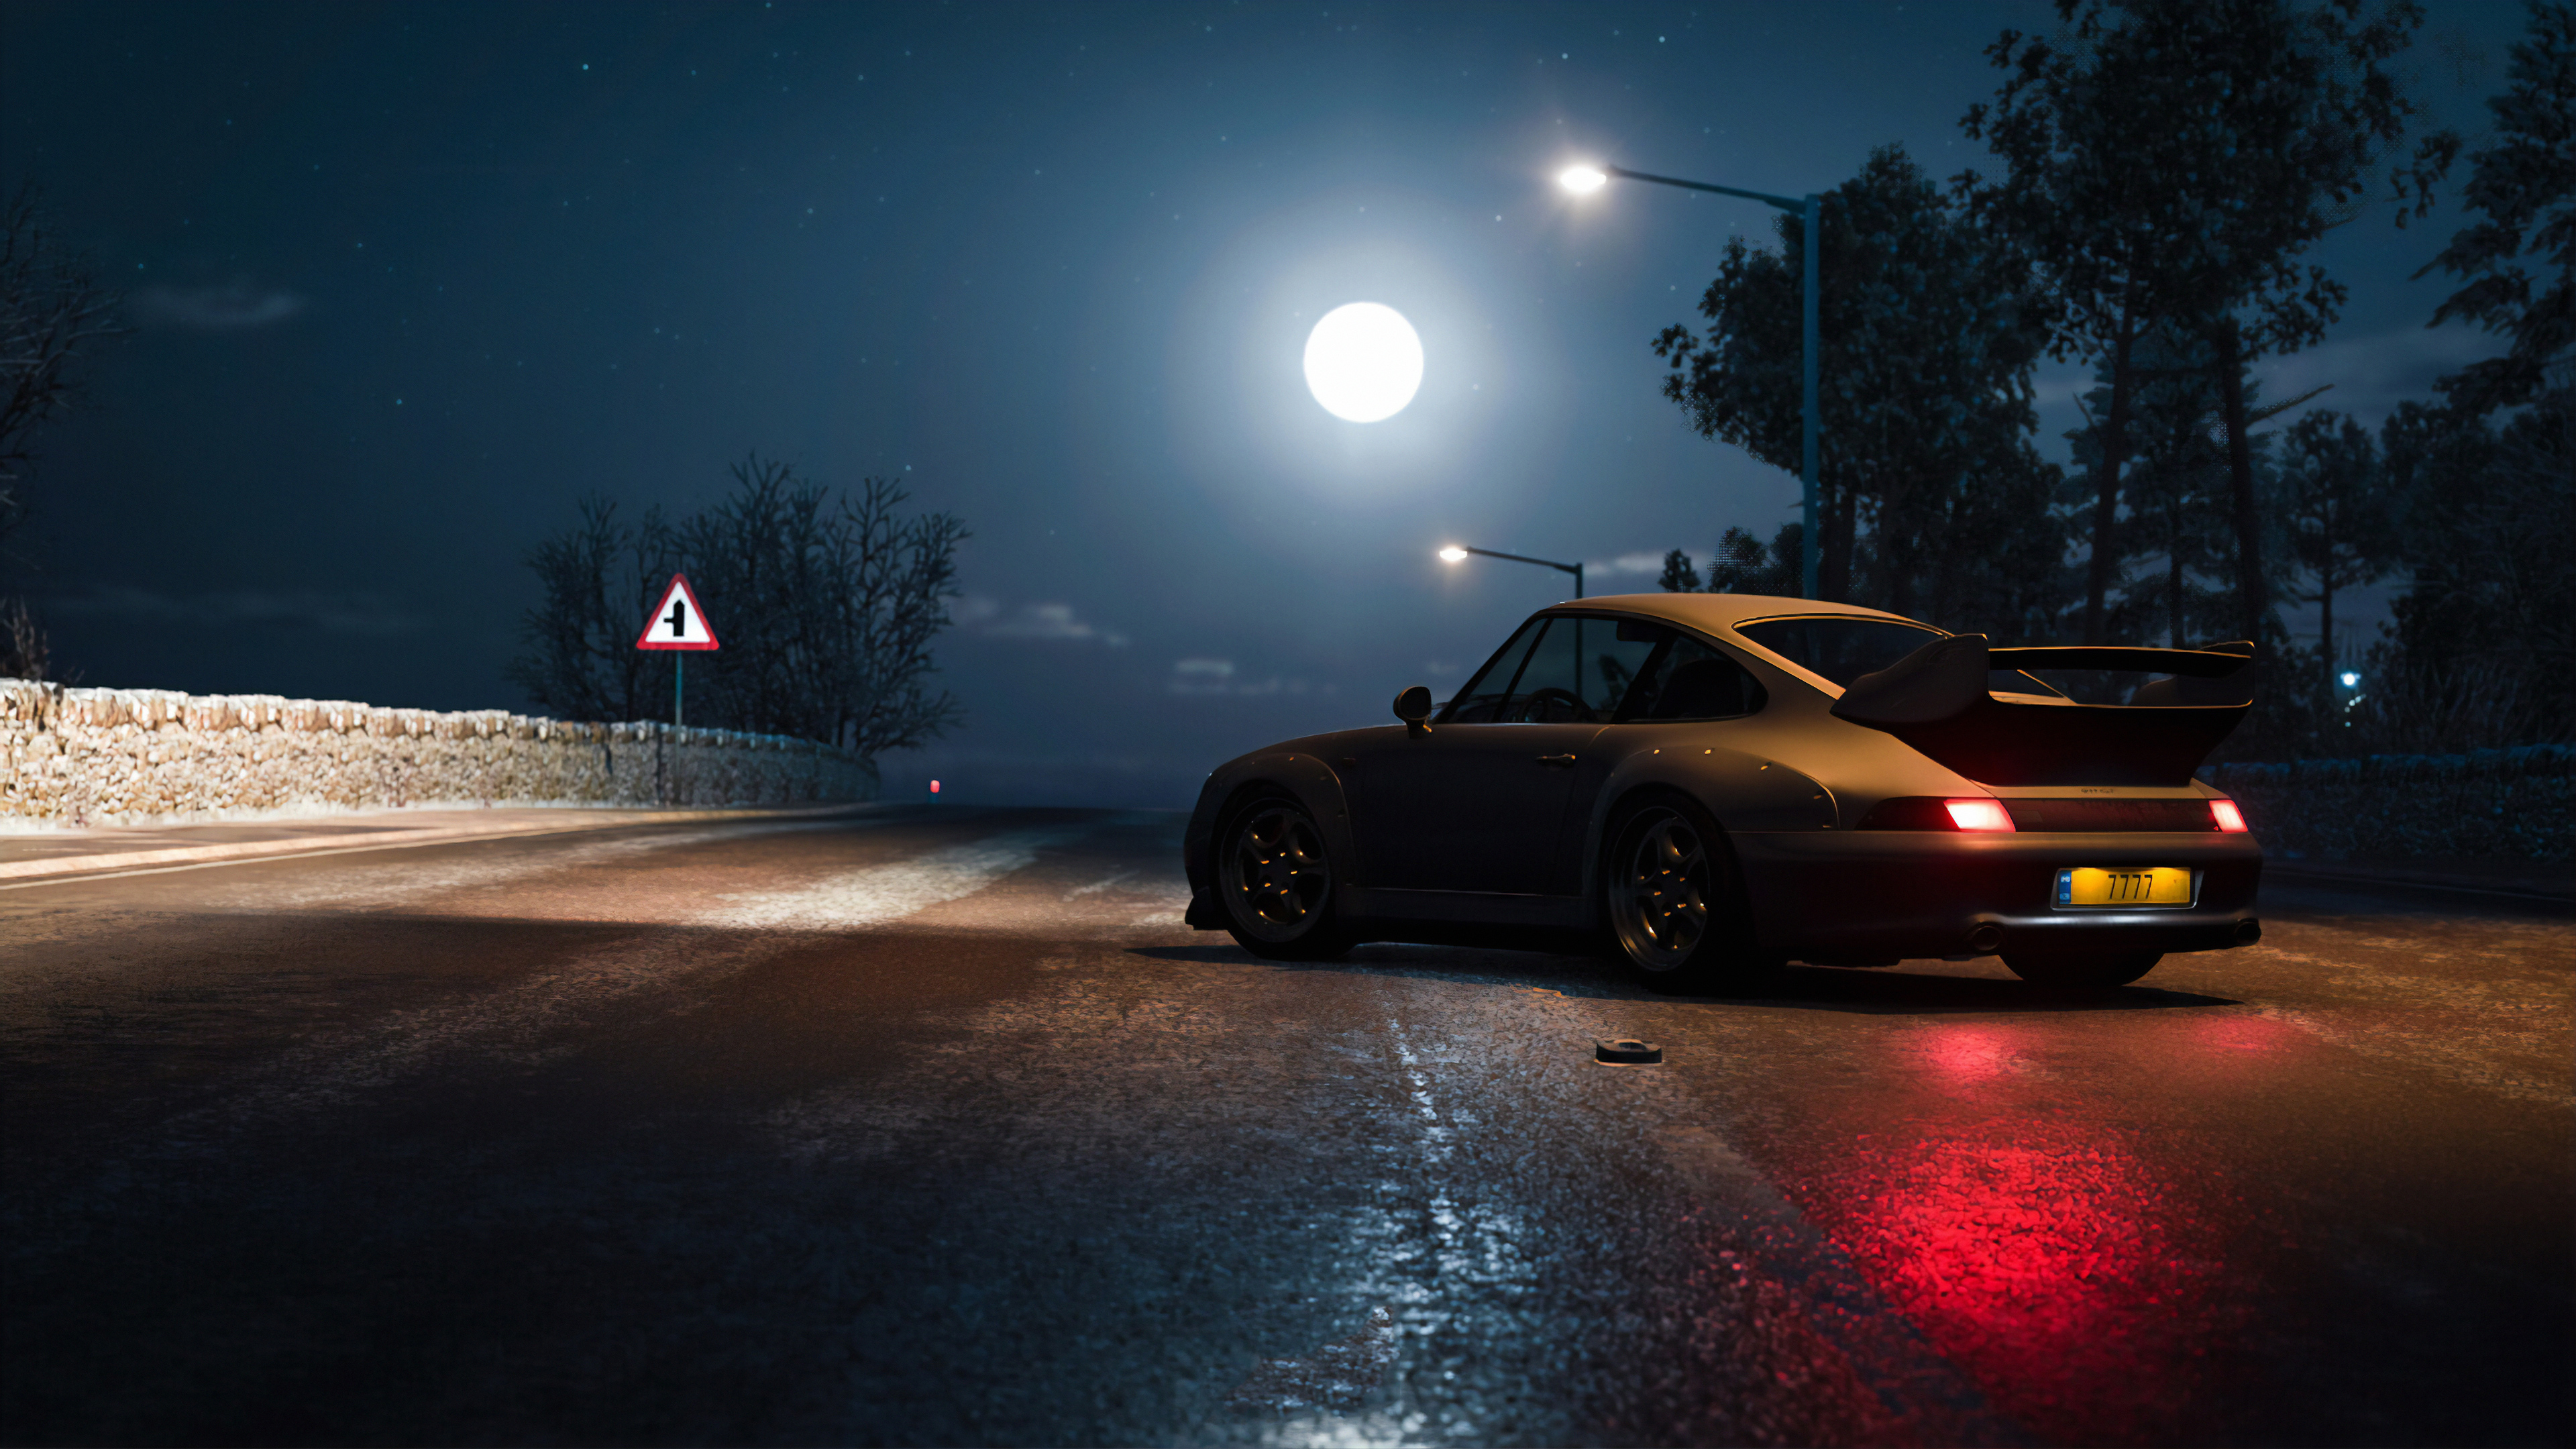 Wallpaper 4k Porsche At Night 4k Wallpapers Cars Wallpapers